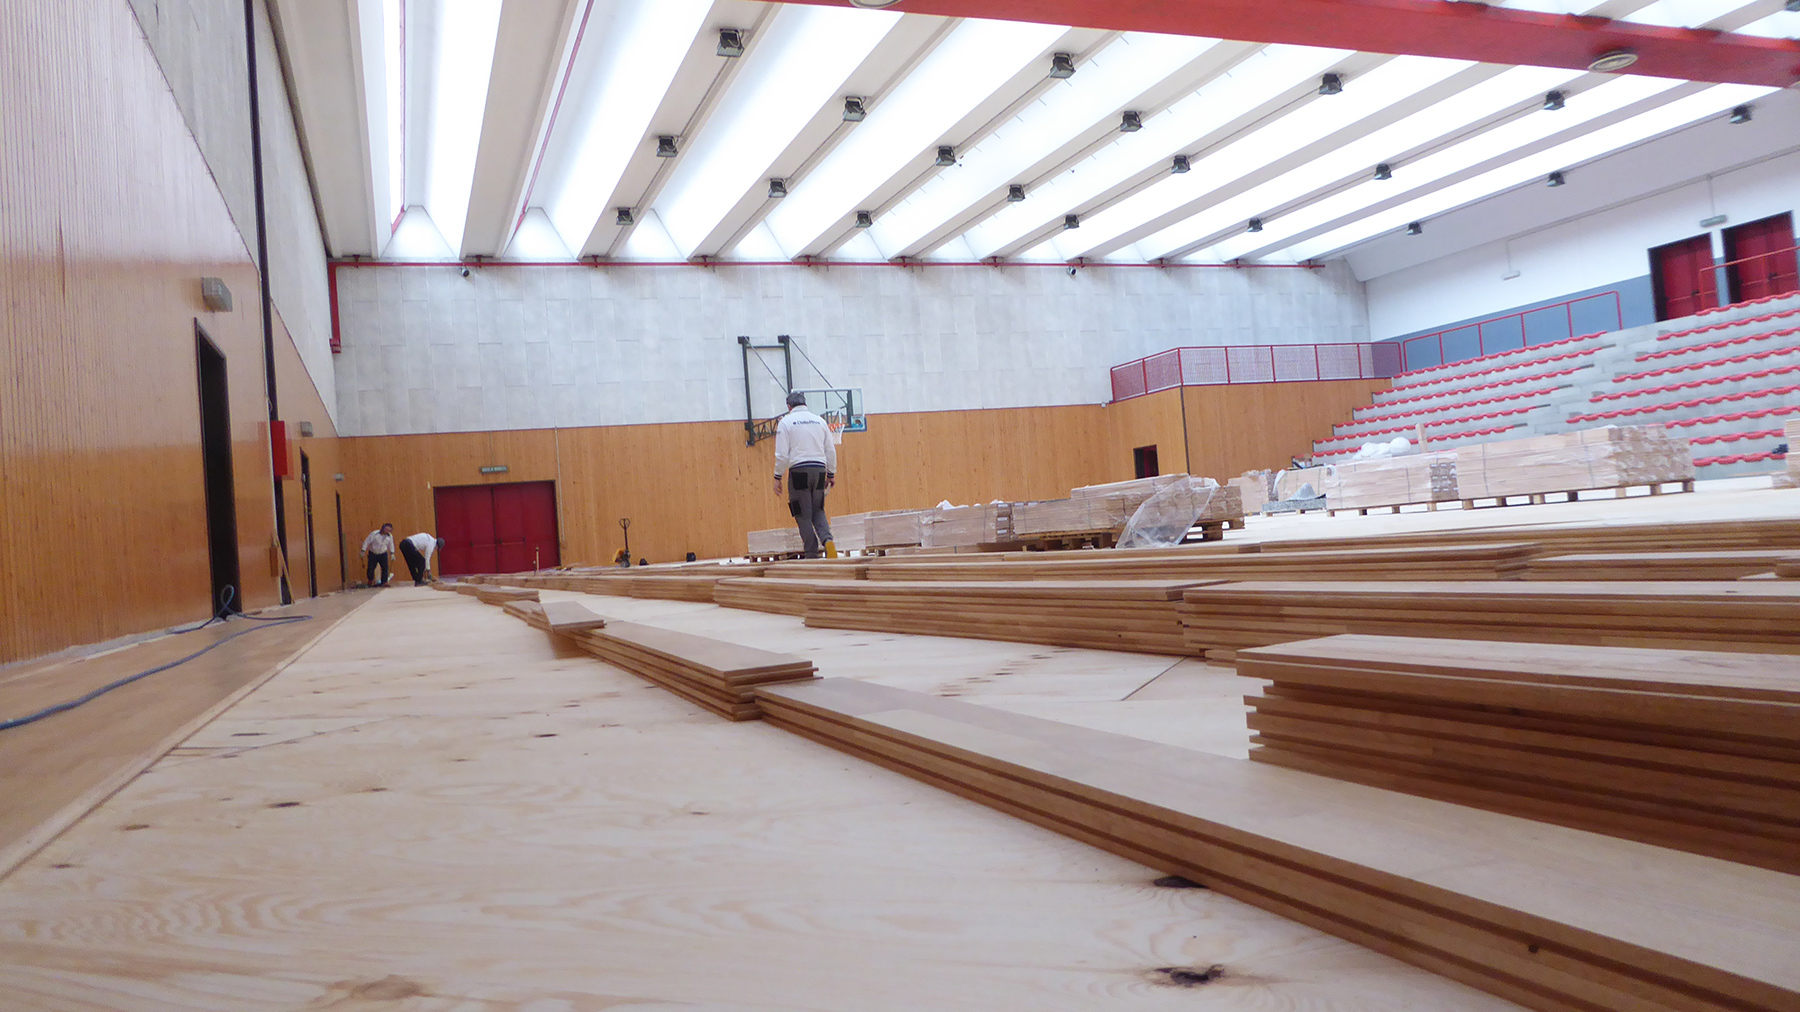 Another perspective of laying parquet